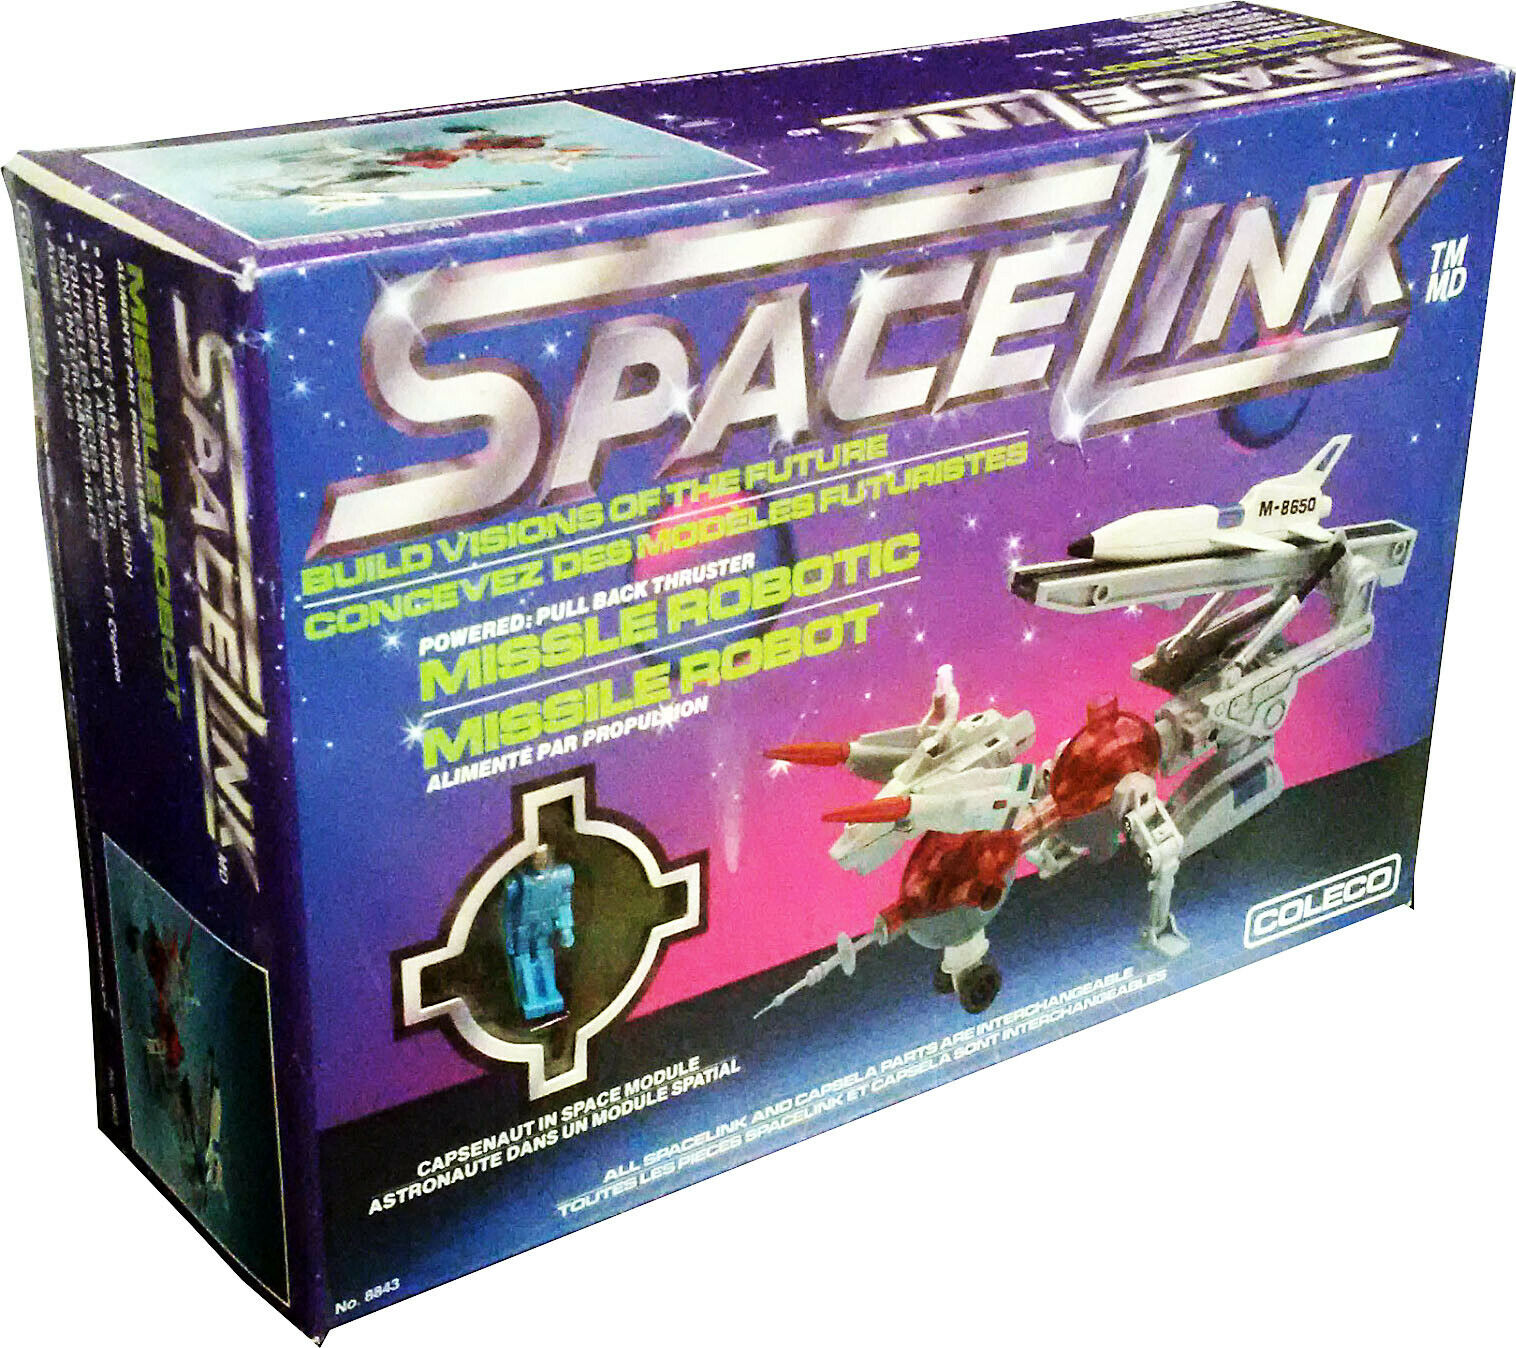 Capsela SpaceLink™ Missile Robotic, Jahr 1986, Collectible. ...  New  MISB